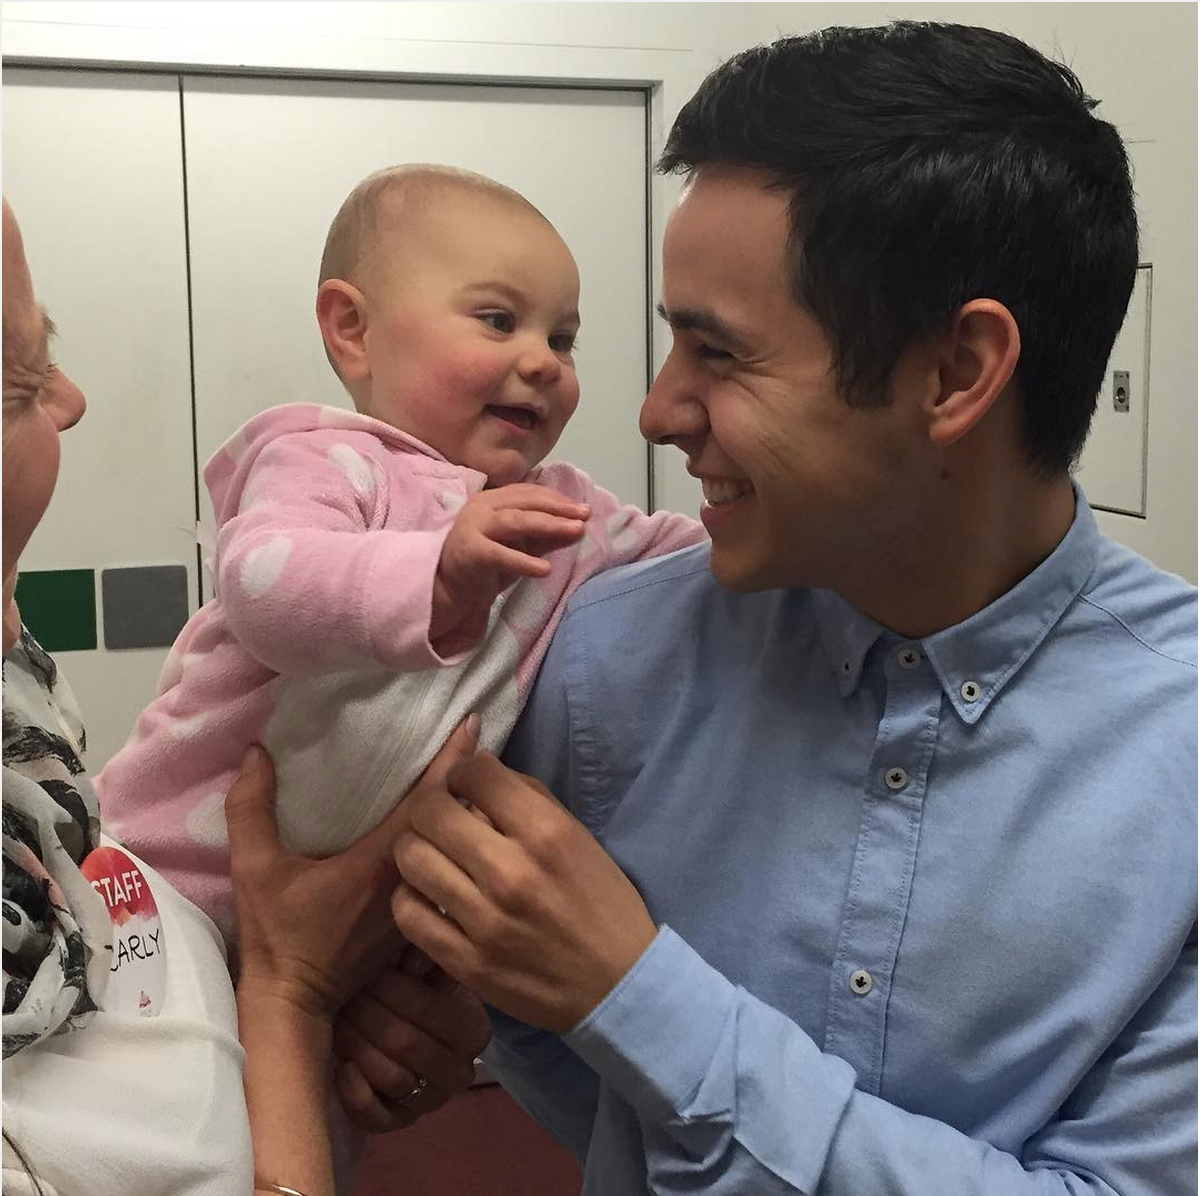 A baby coos at David Archuleta at Time Out for Woman event in August 2015